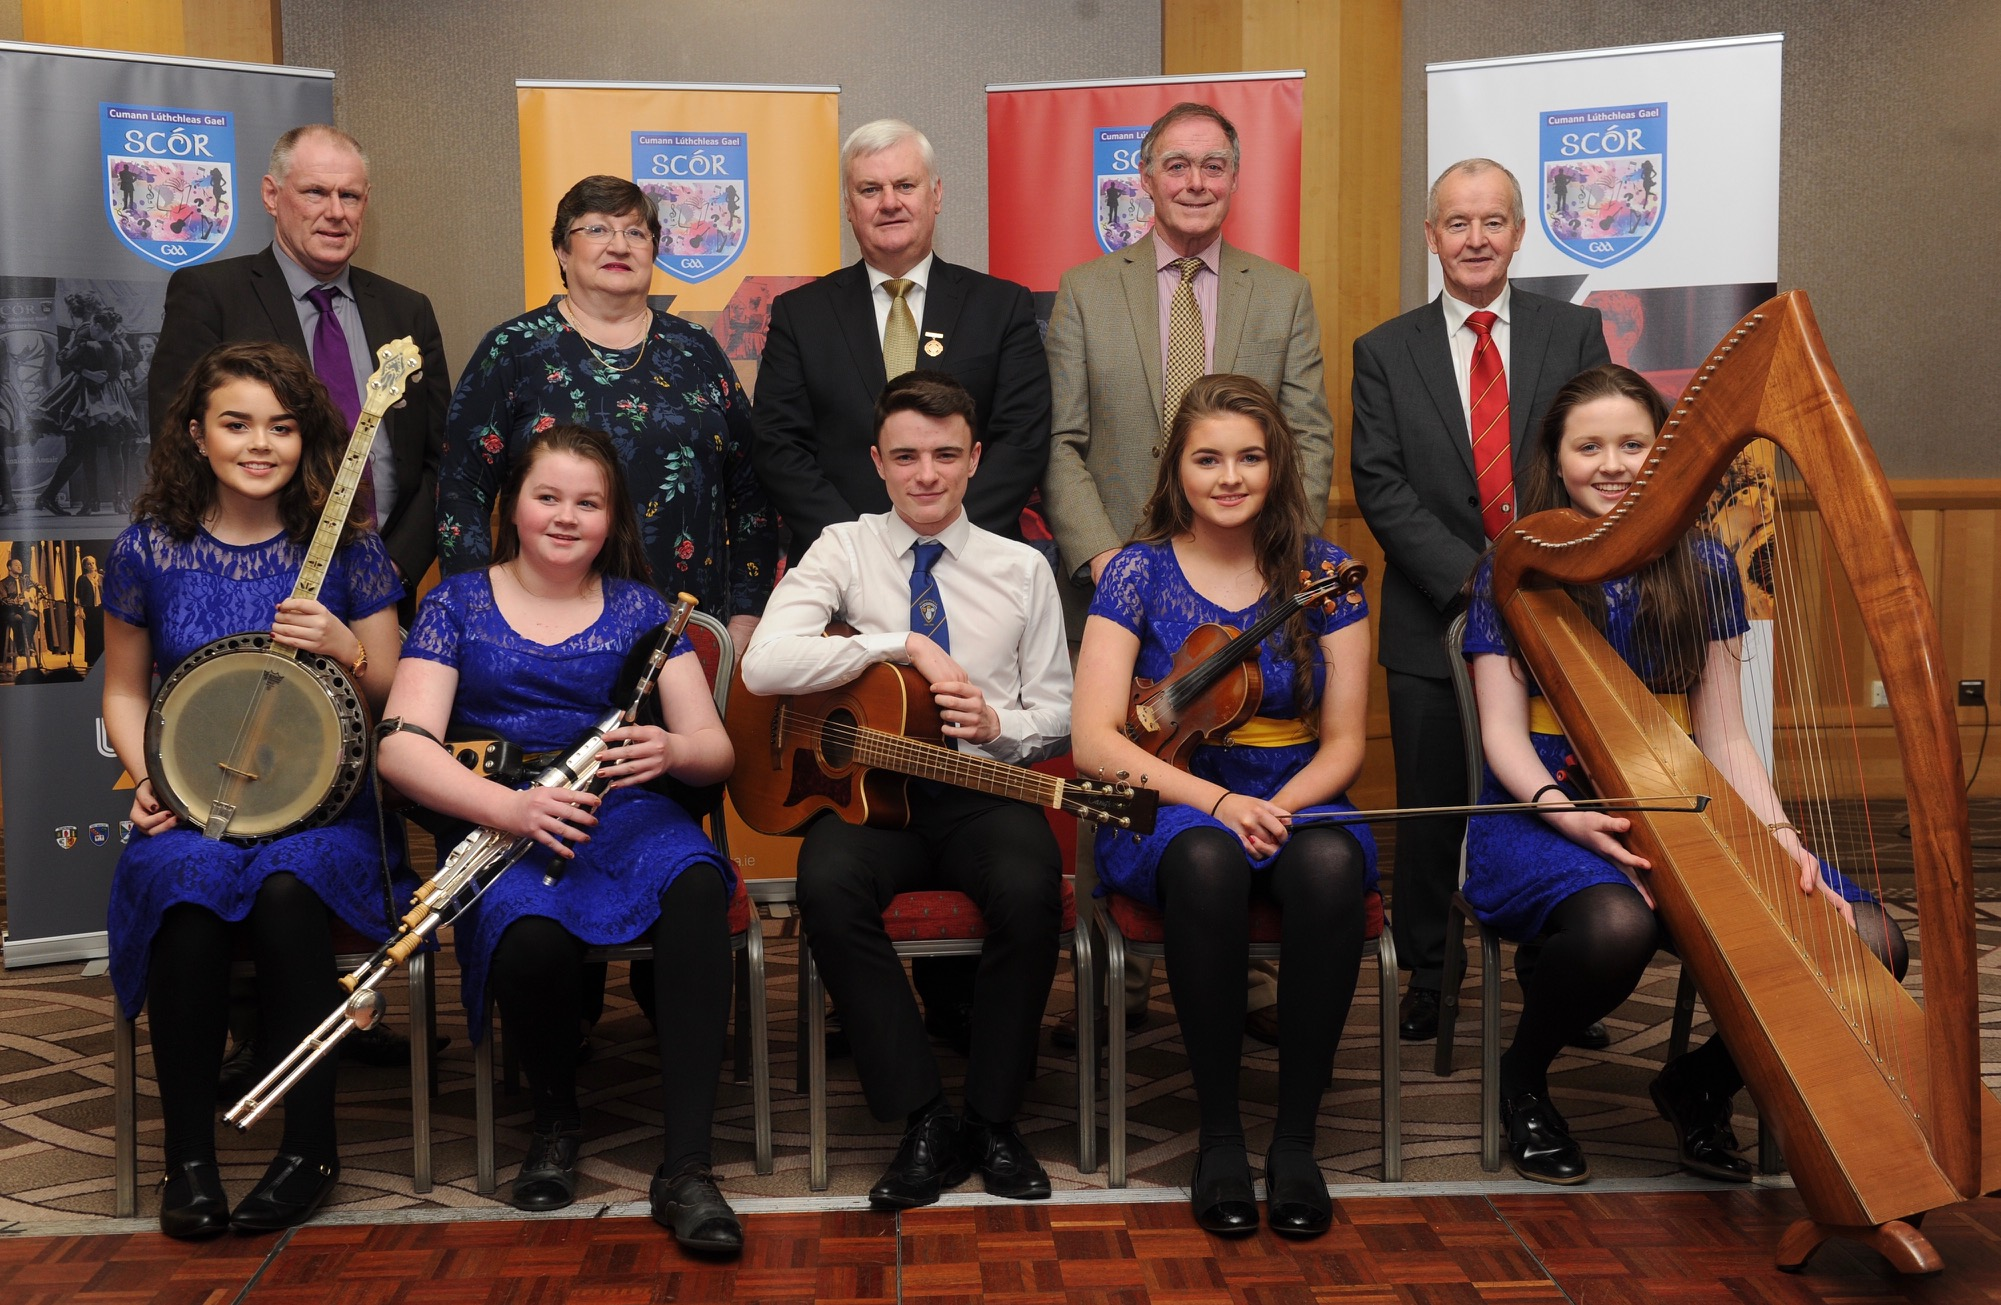 Belfast to host 2017 All Ireland Finals of Scór